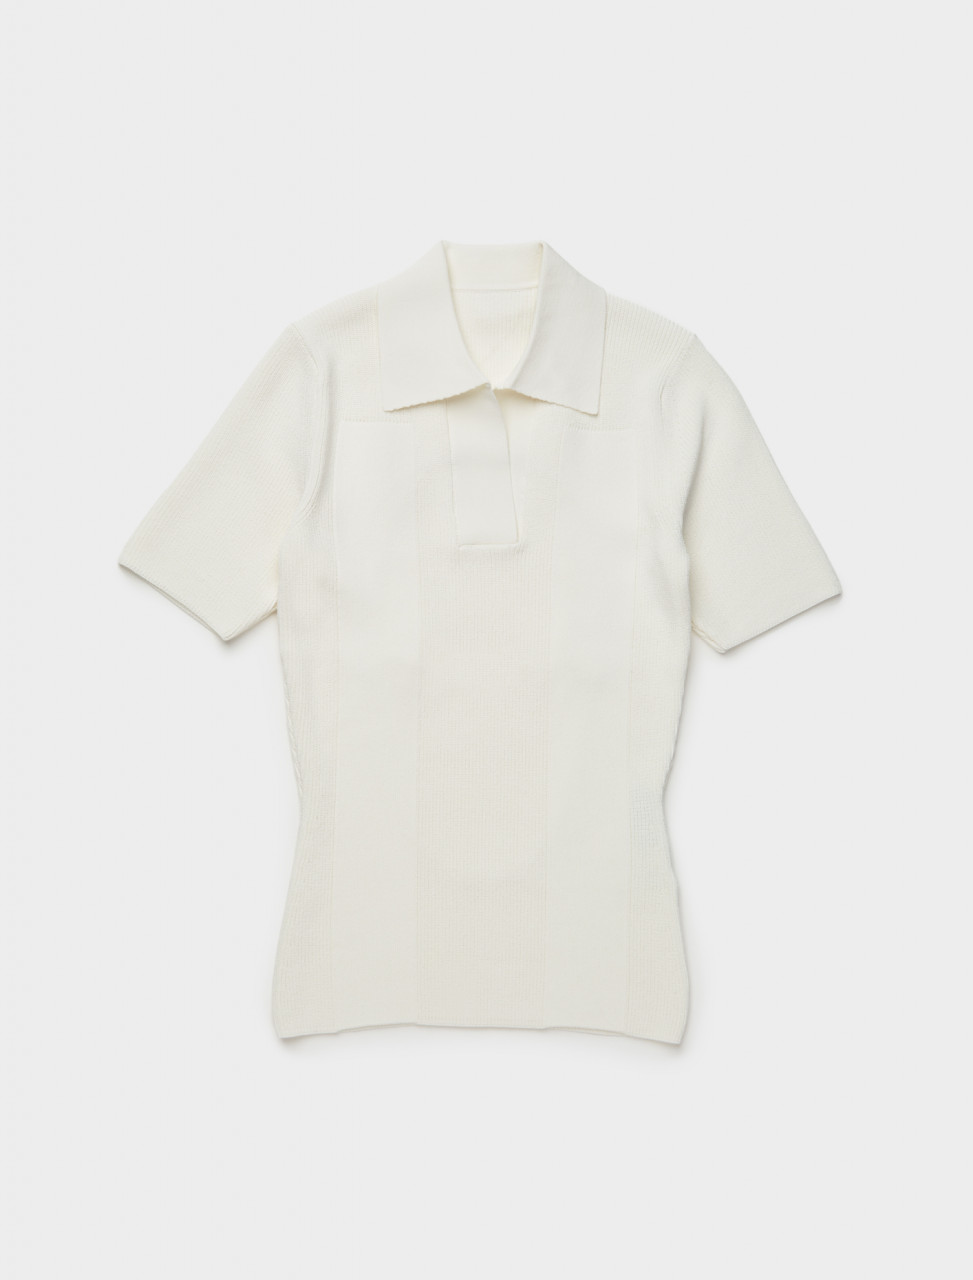 203KN59-203-202010 JACQUEMUS LA MAILLE POLO IN OFF WHITE FRONT